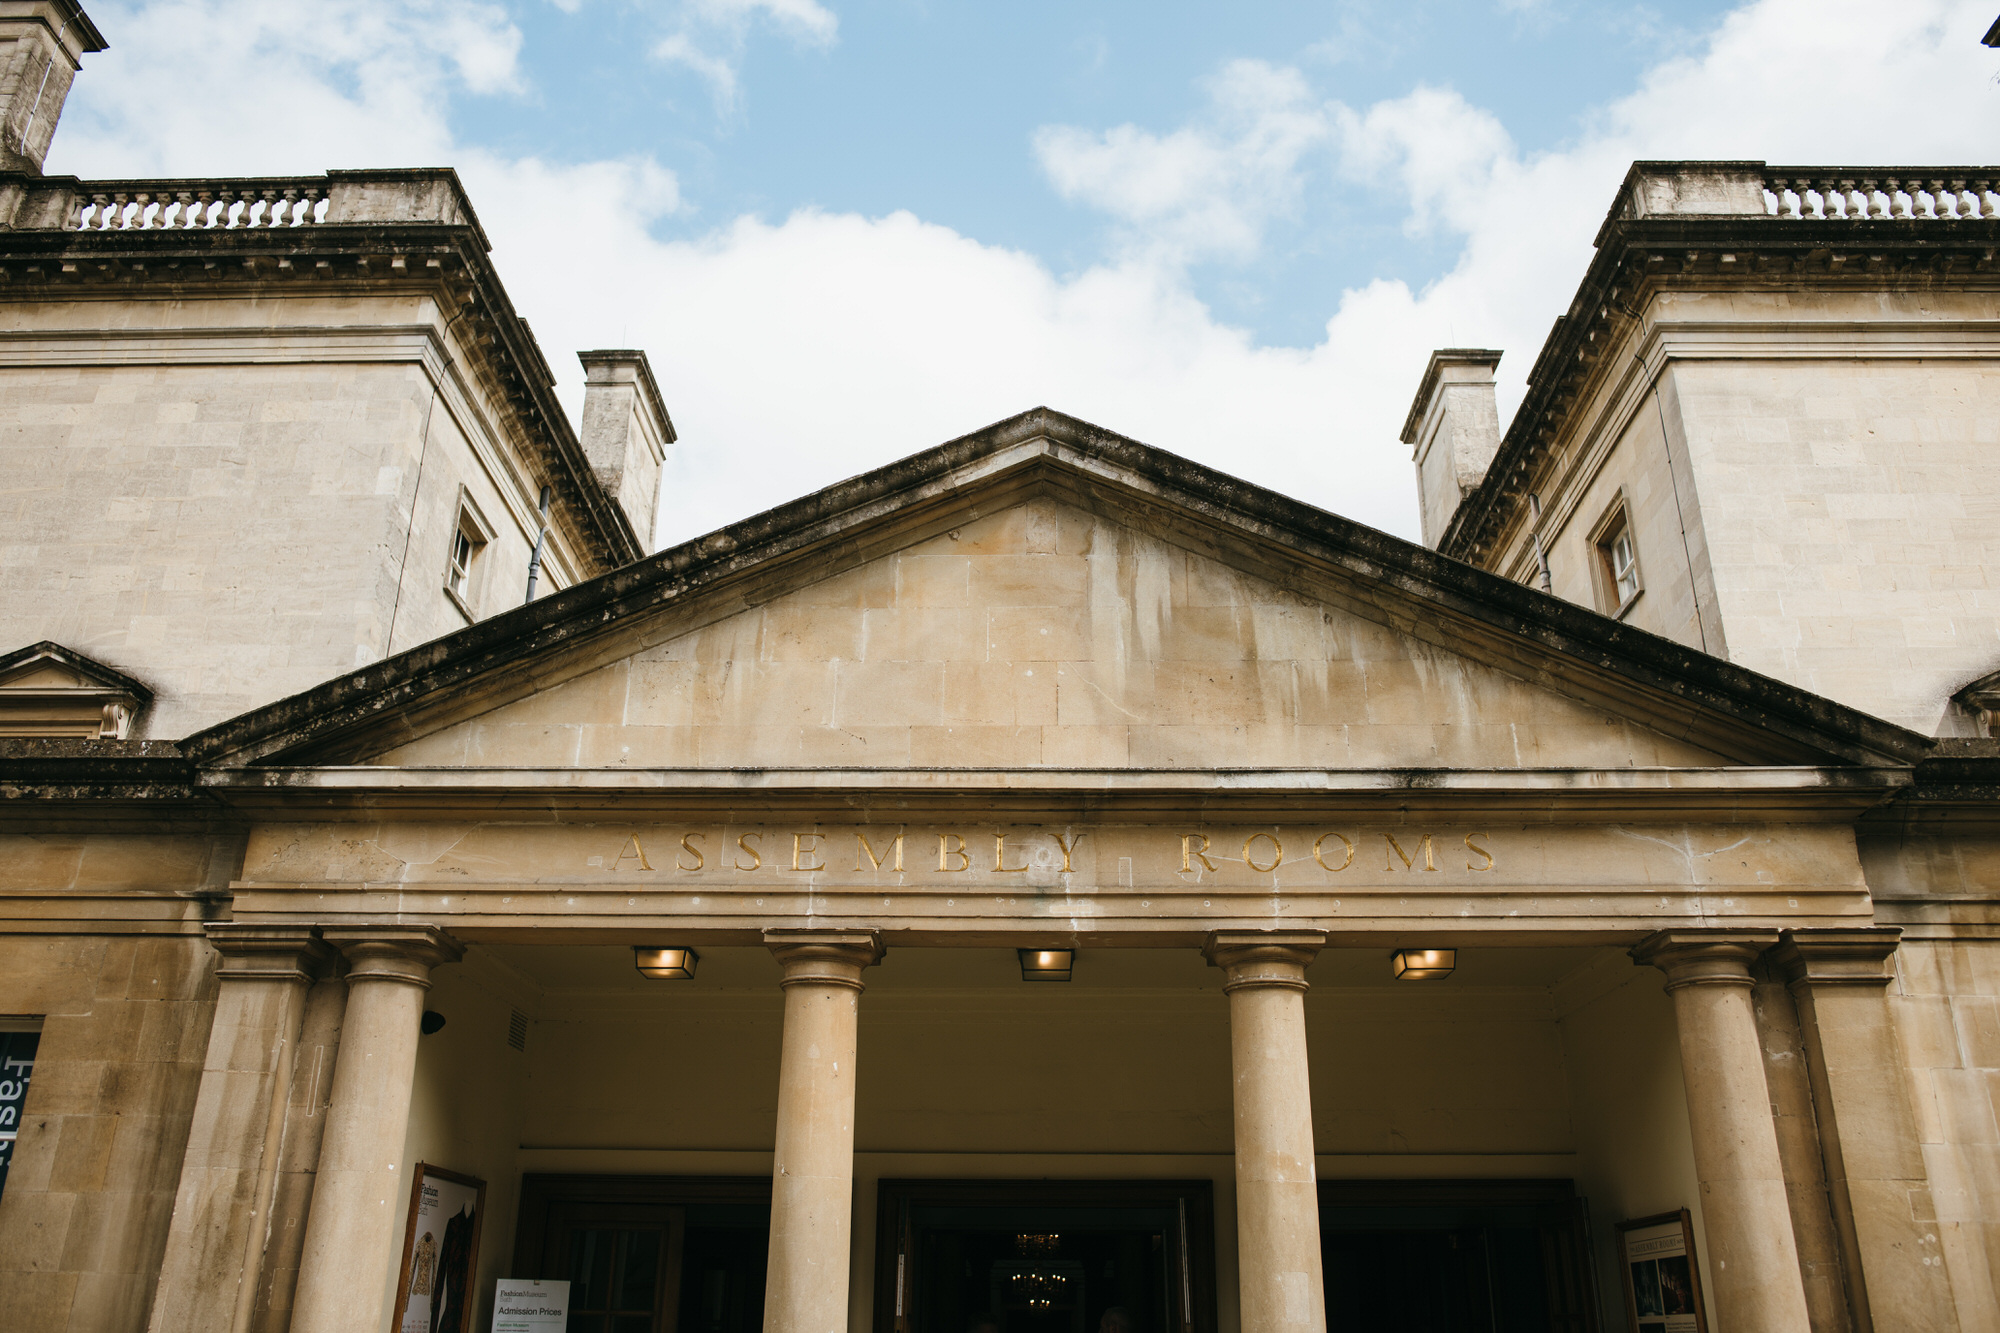 Assembly rooms bath wedding venue simon biffen photography 1